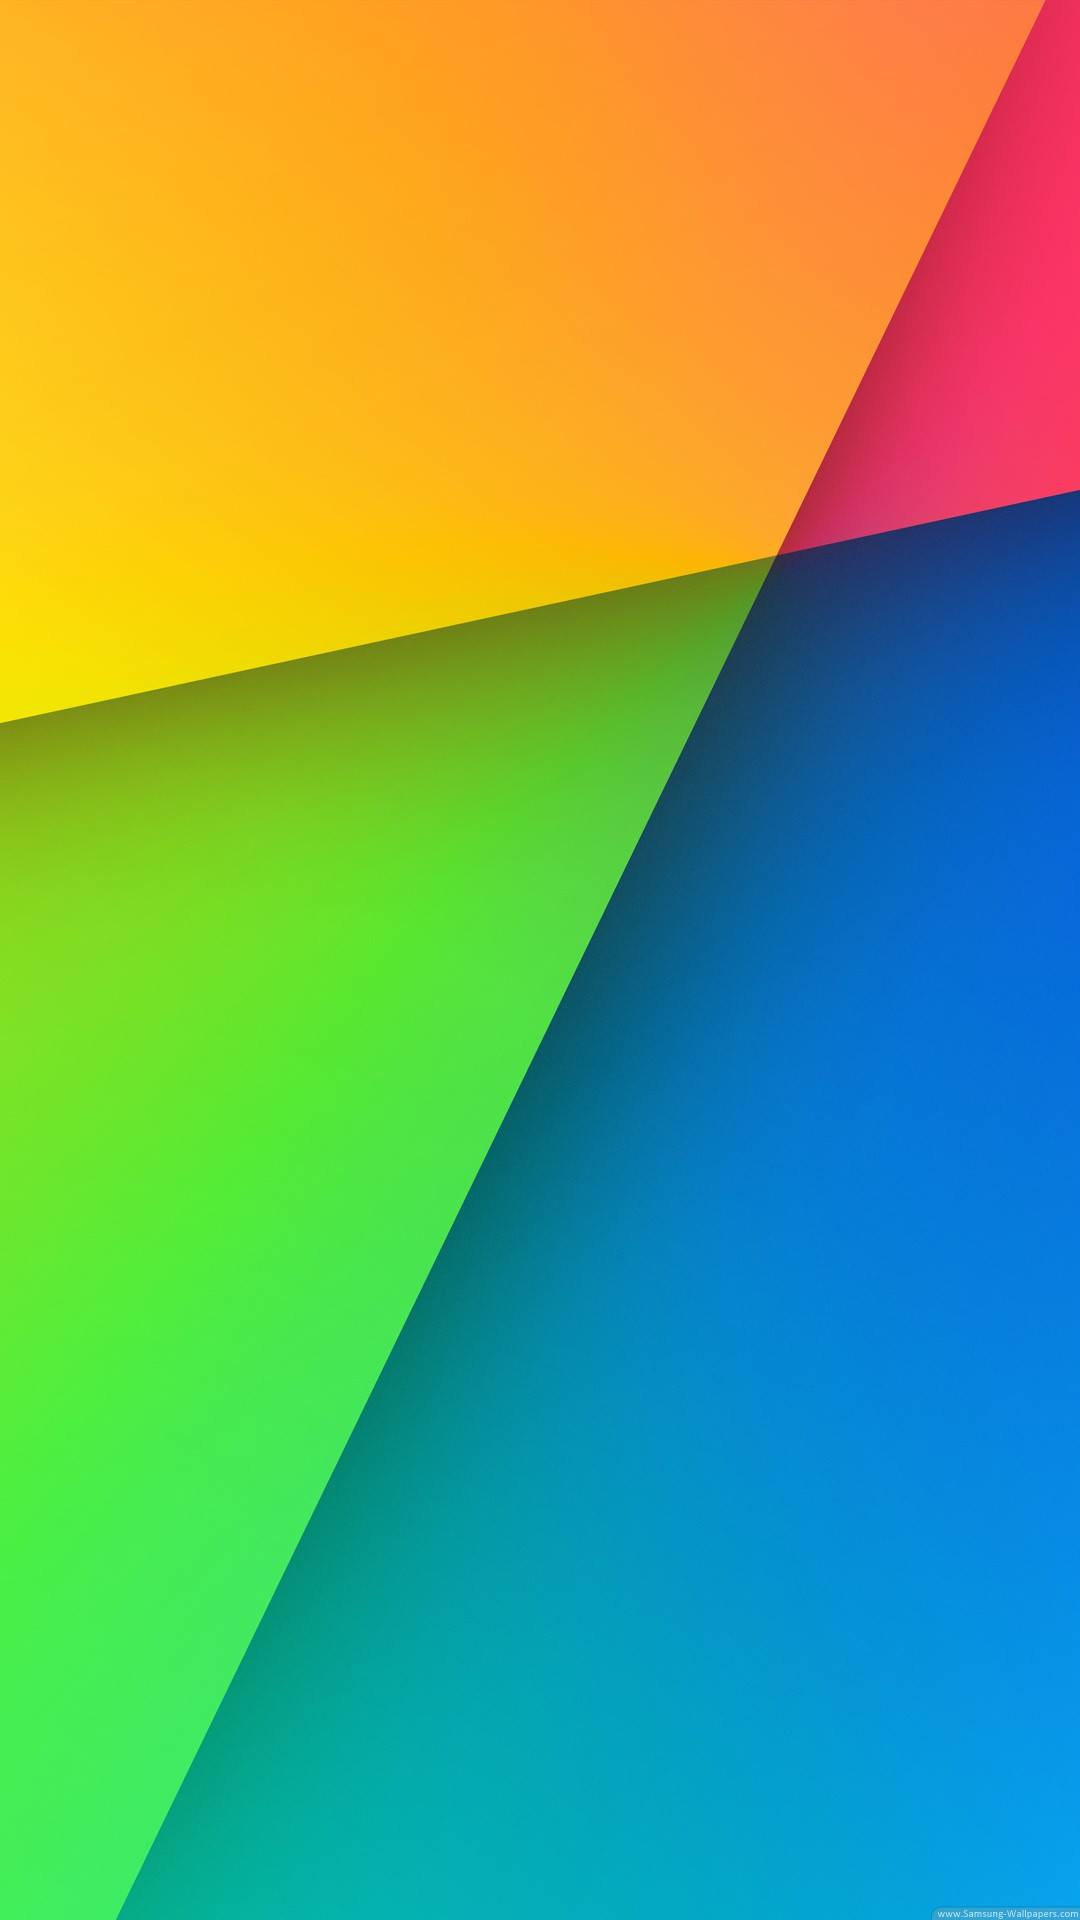 Android phone wallpaper download free wallpapers for for Abstract smartphone wallpaper